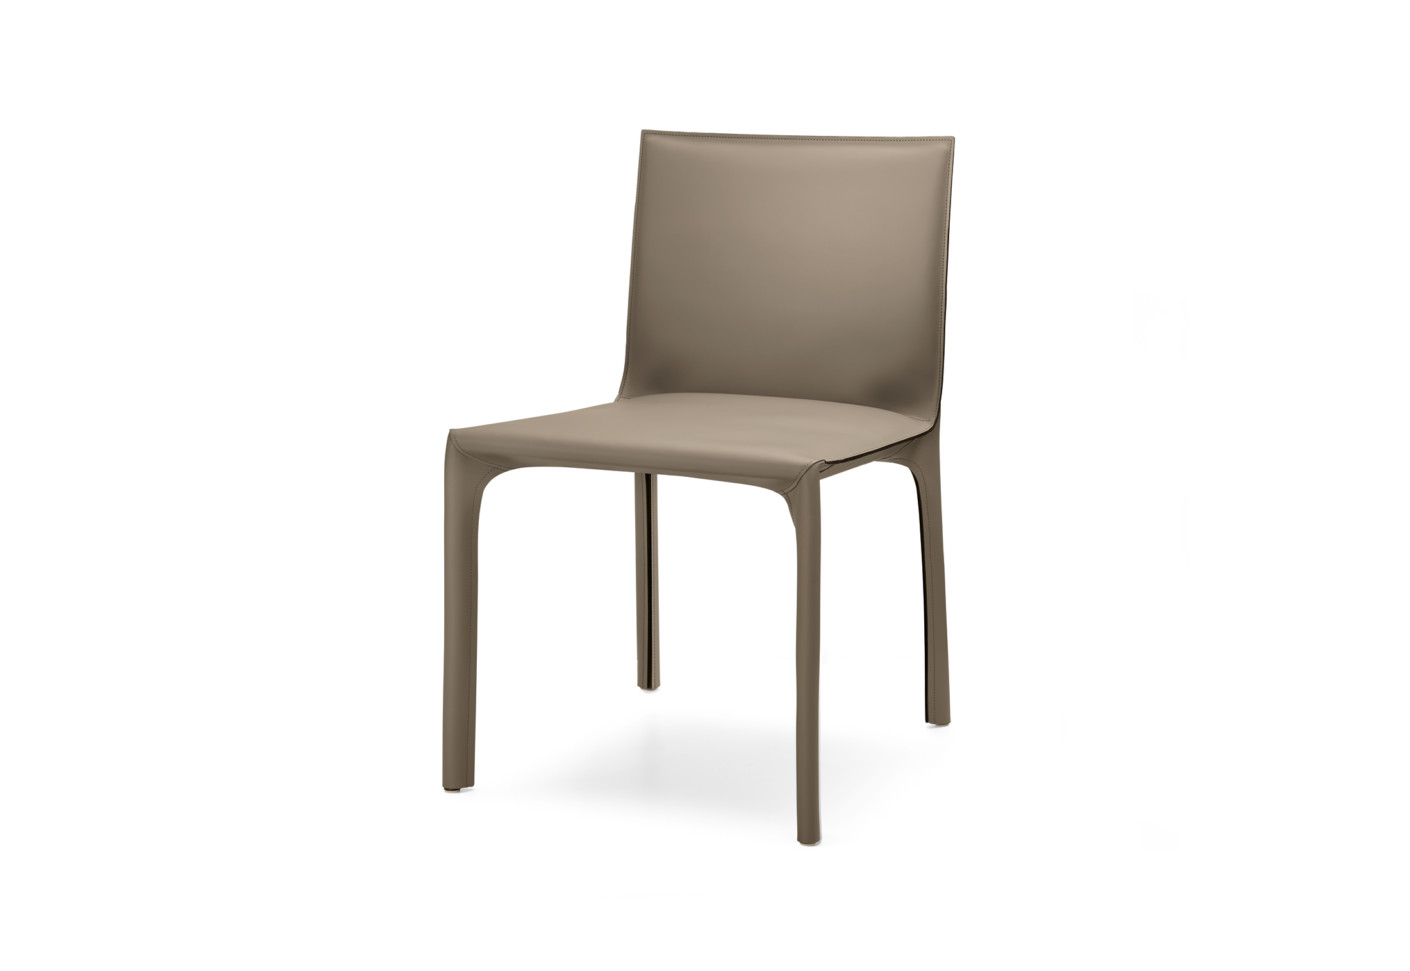 Saddle Chair by Walter Knoll